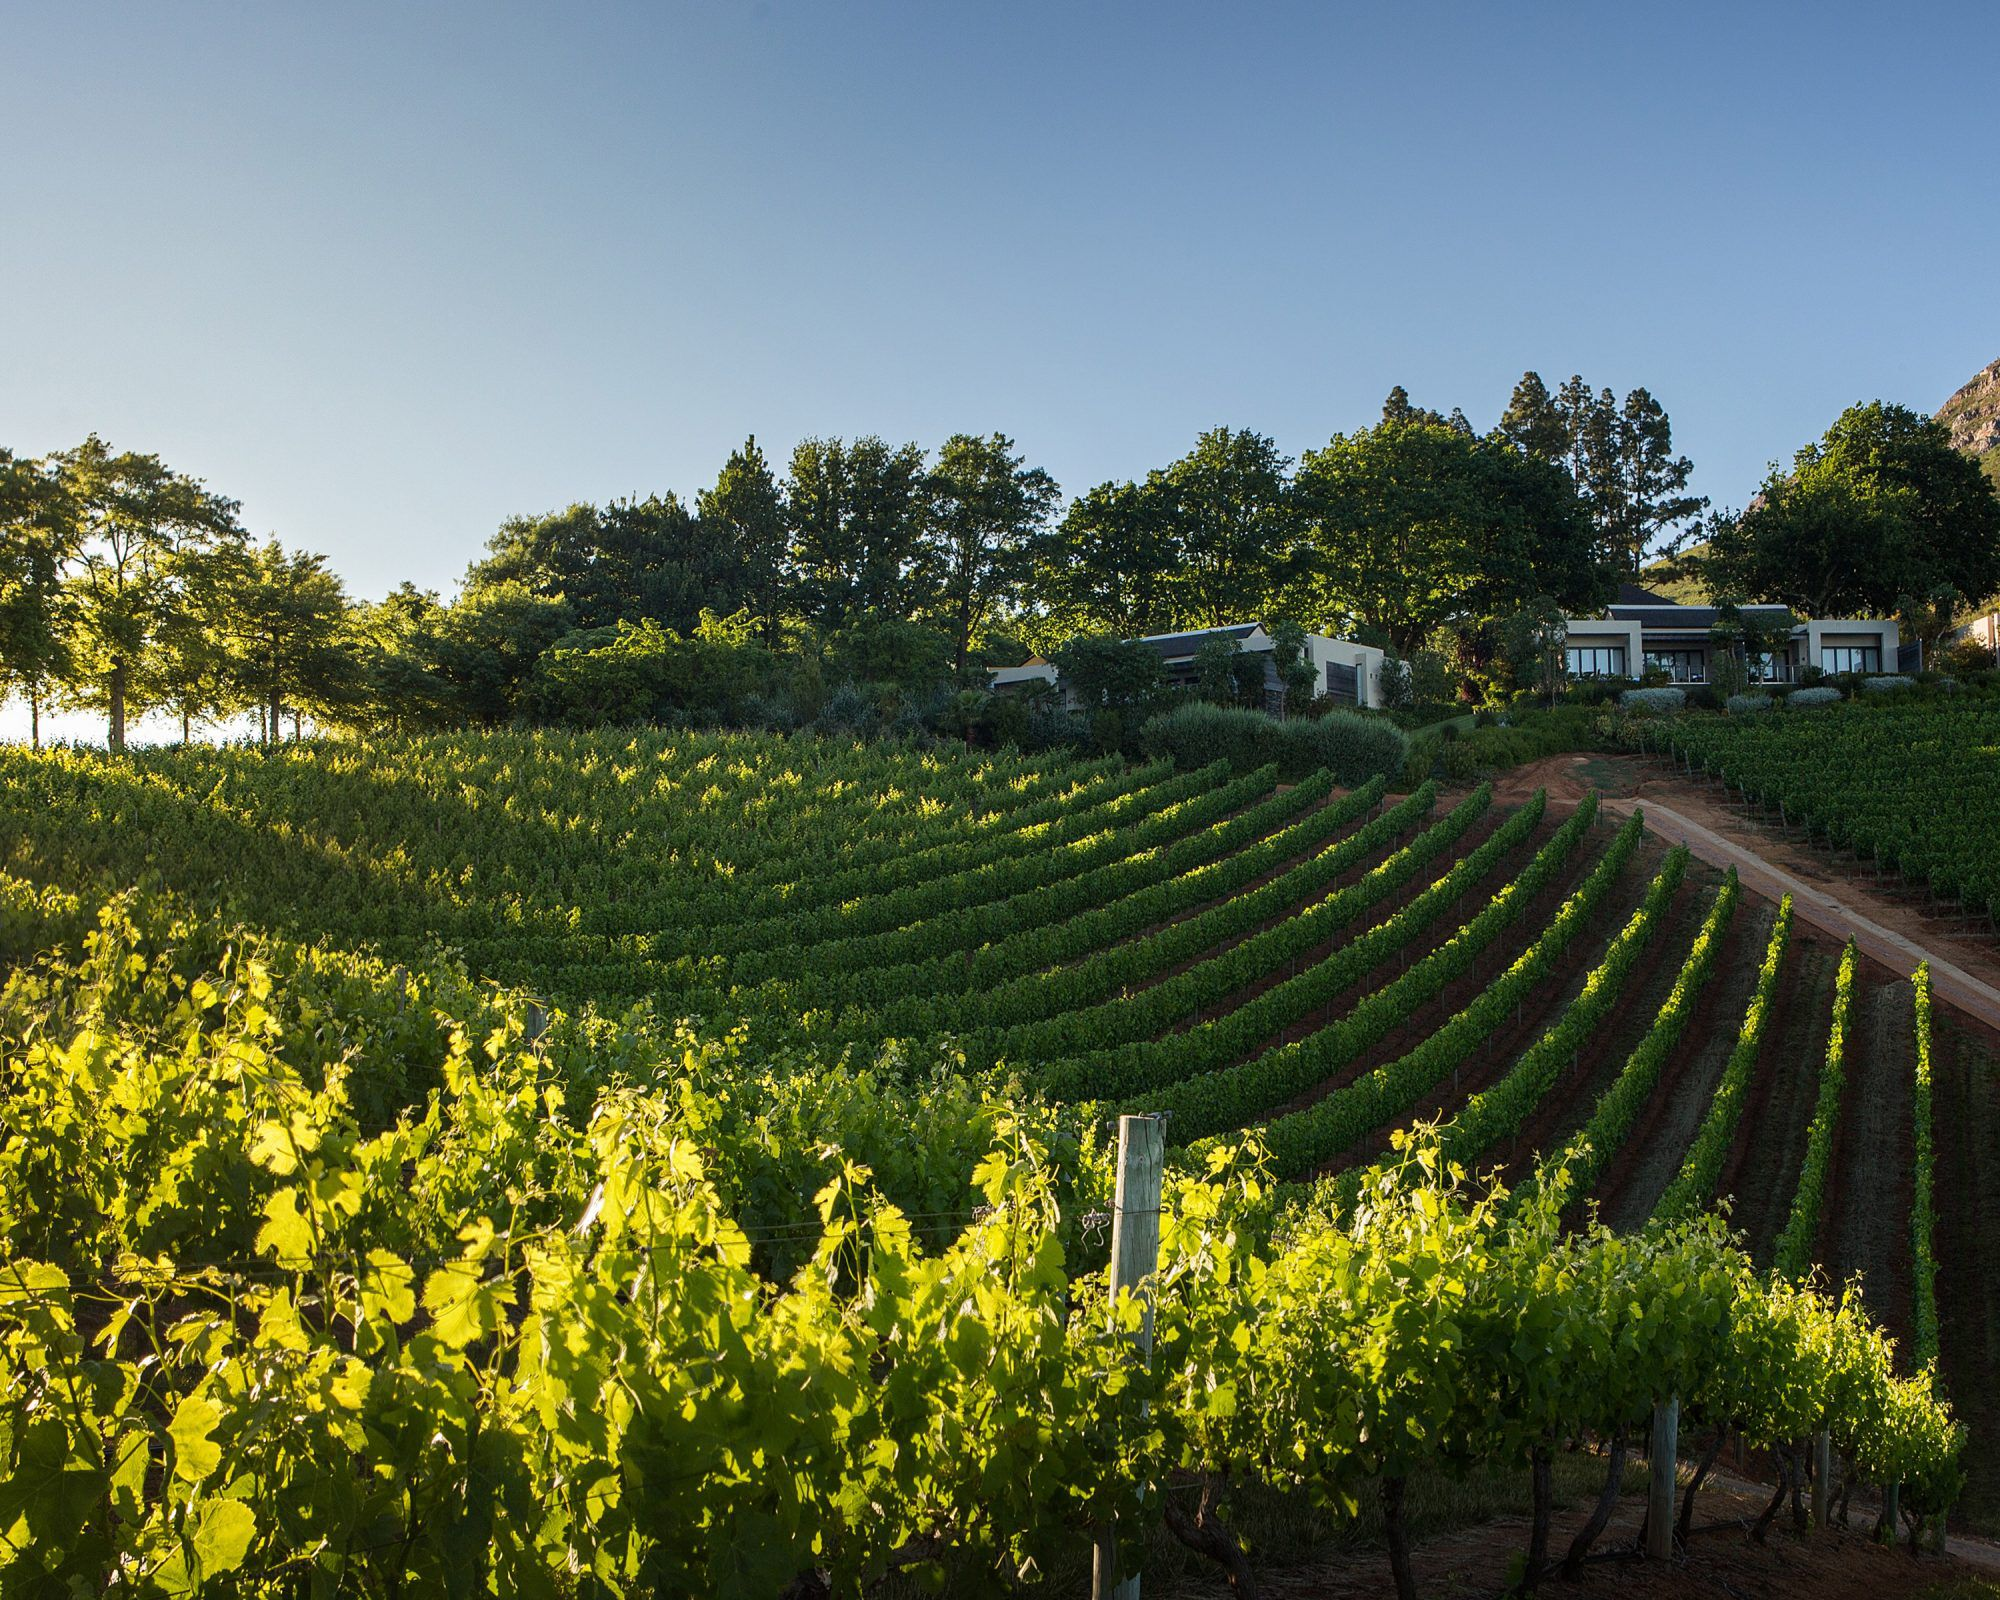 The Vineyards of the Delaire Graff estate in Stellenbosch, South Africa